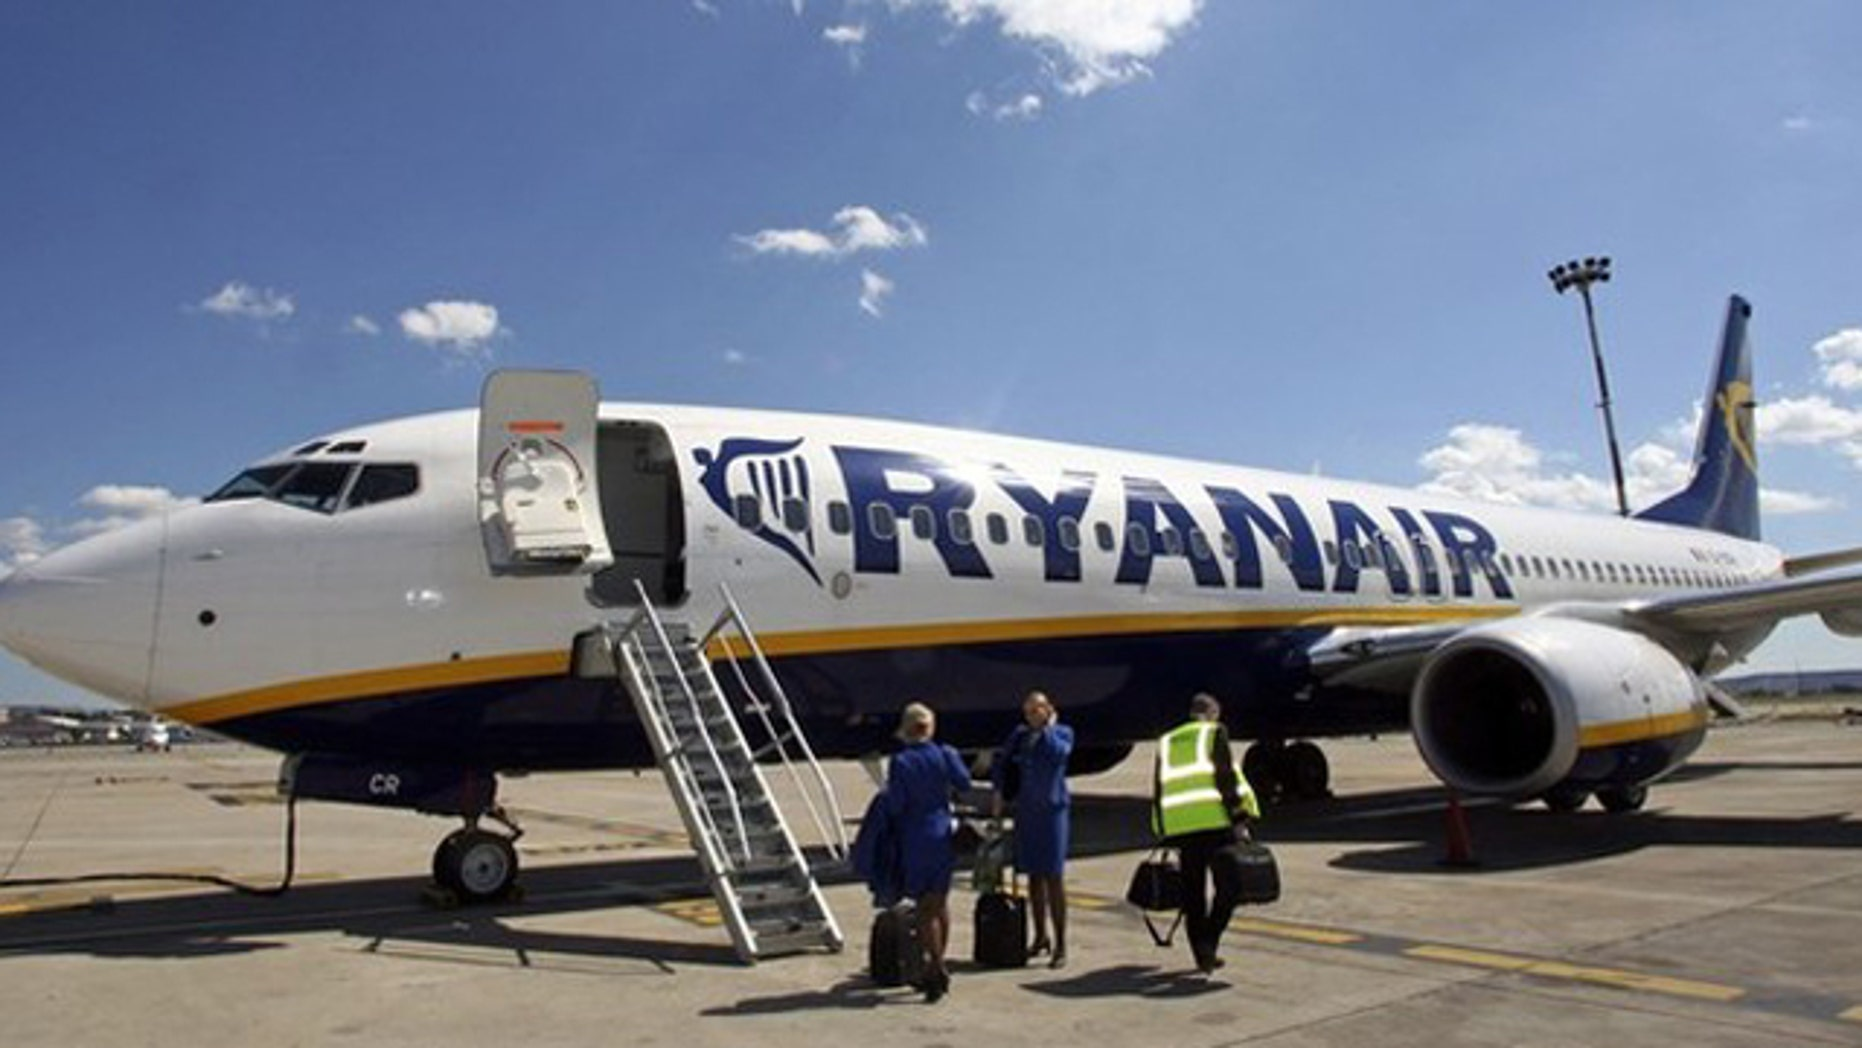 Ryanair crew stand in front of the airline's passenger jet on the tarmac of Marignane airport in Marseille in this May 10, 2006 file photo. Low-cost airline Ryanair has been charged with illegal working practices after the Irish budget airline declared 120 employees in France as working in Ireland, a justice source said on September 28, 2010.   REUTERS/Jean-Paul Pelissier/Files   (FRANCE - Tags: TRANSPORT EMPLOYMENT BUSINESS CRIME LAW)